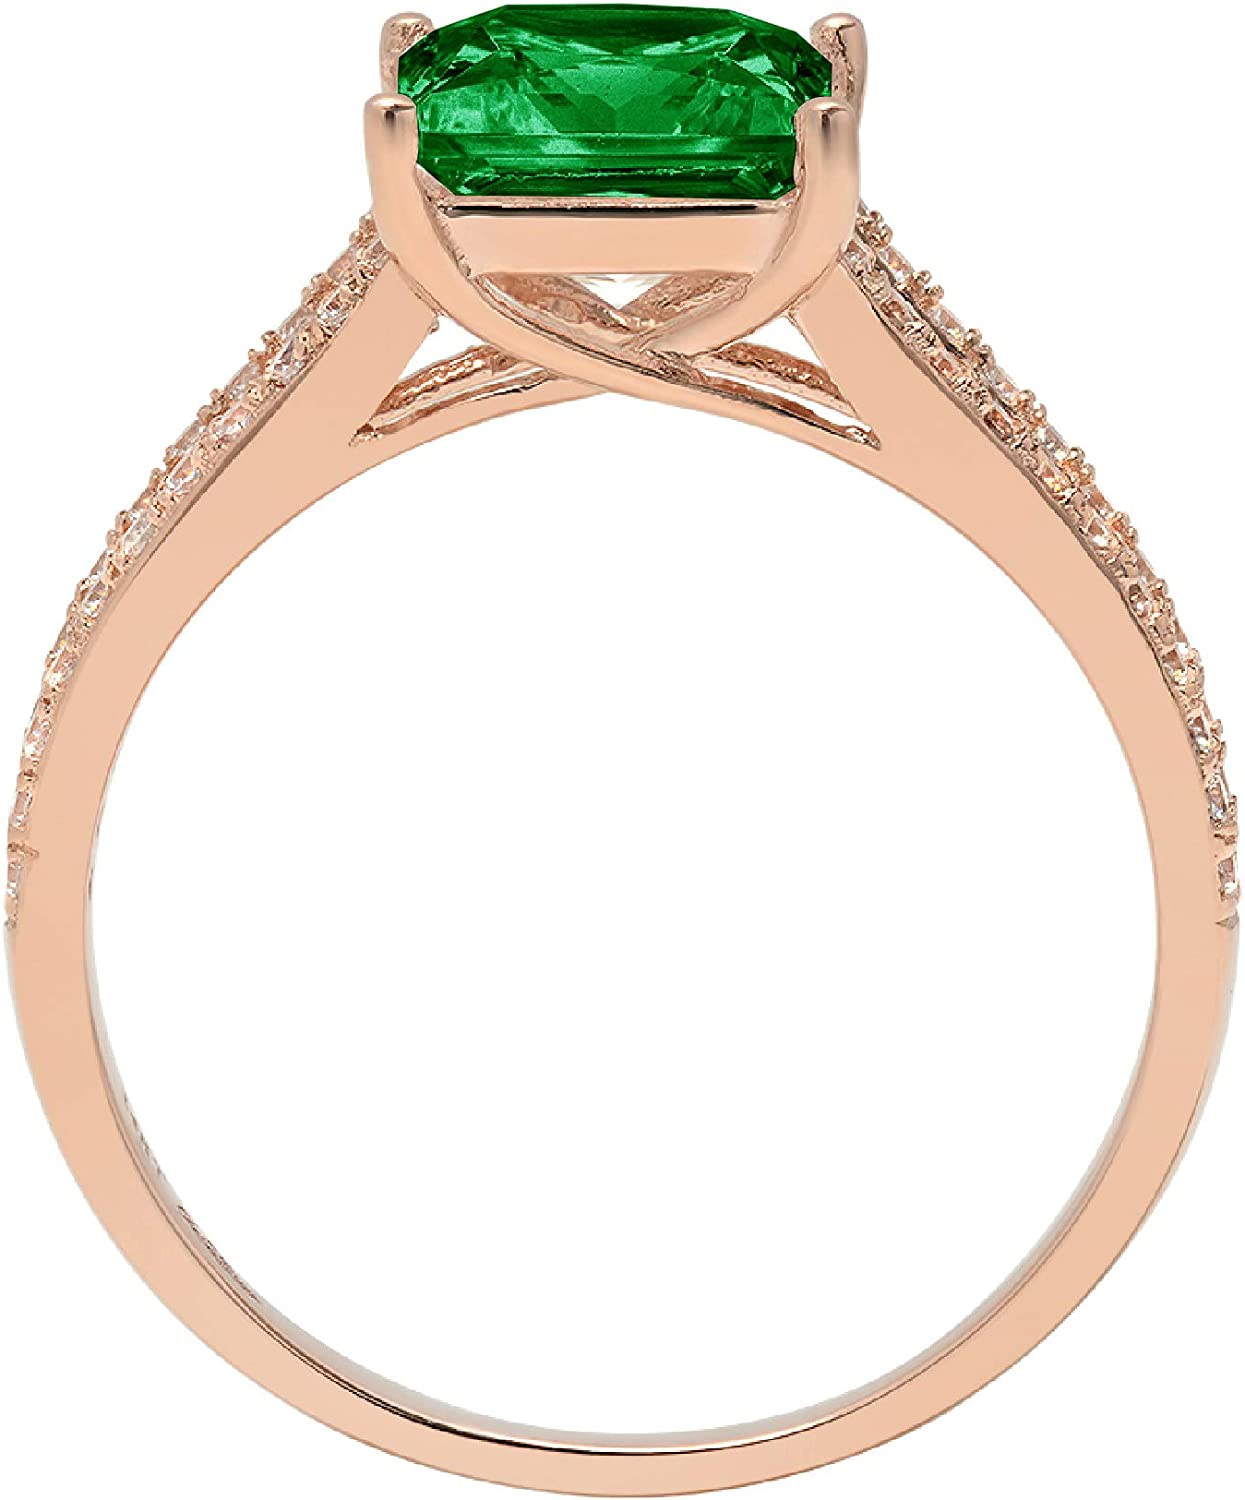 2.36ct Princess Cut Solitaire with Accent split shank Flawless Ideal VVS1 Simulated CZ Green Emerald Engagement Promise Statement Anniversary Bridal Wedding Designer Ring Solid 14k Rose Gold